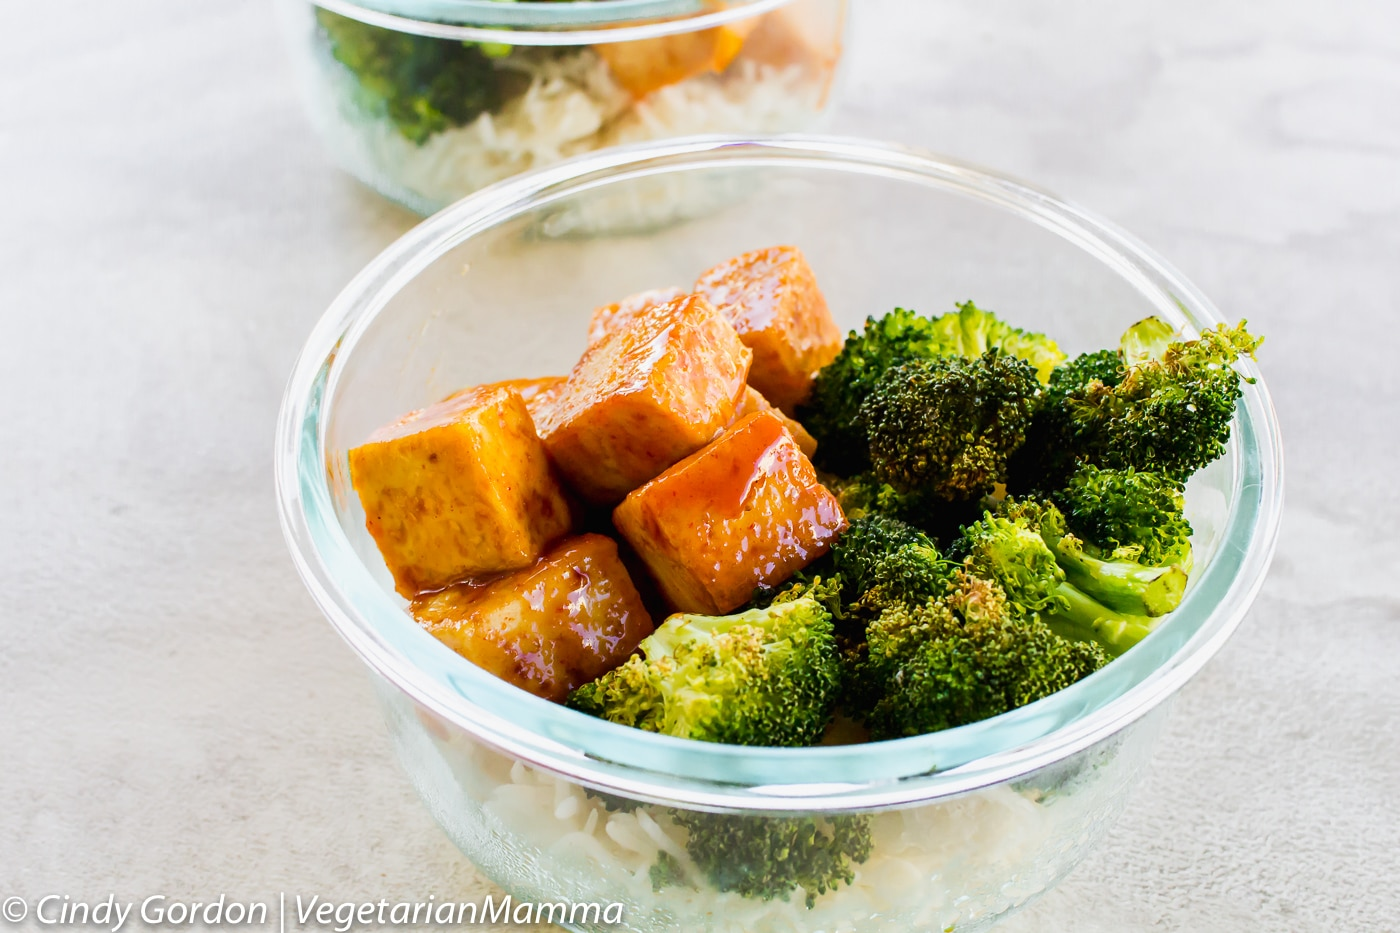 Honey Sriracha Tofu is a spicy fried tofu recipe that is perfect for meal preps!